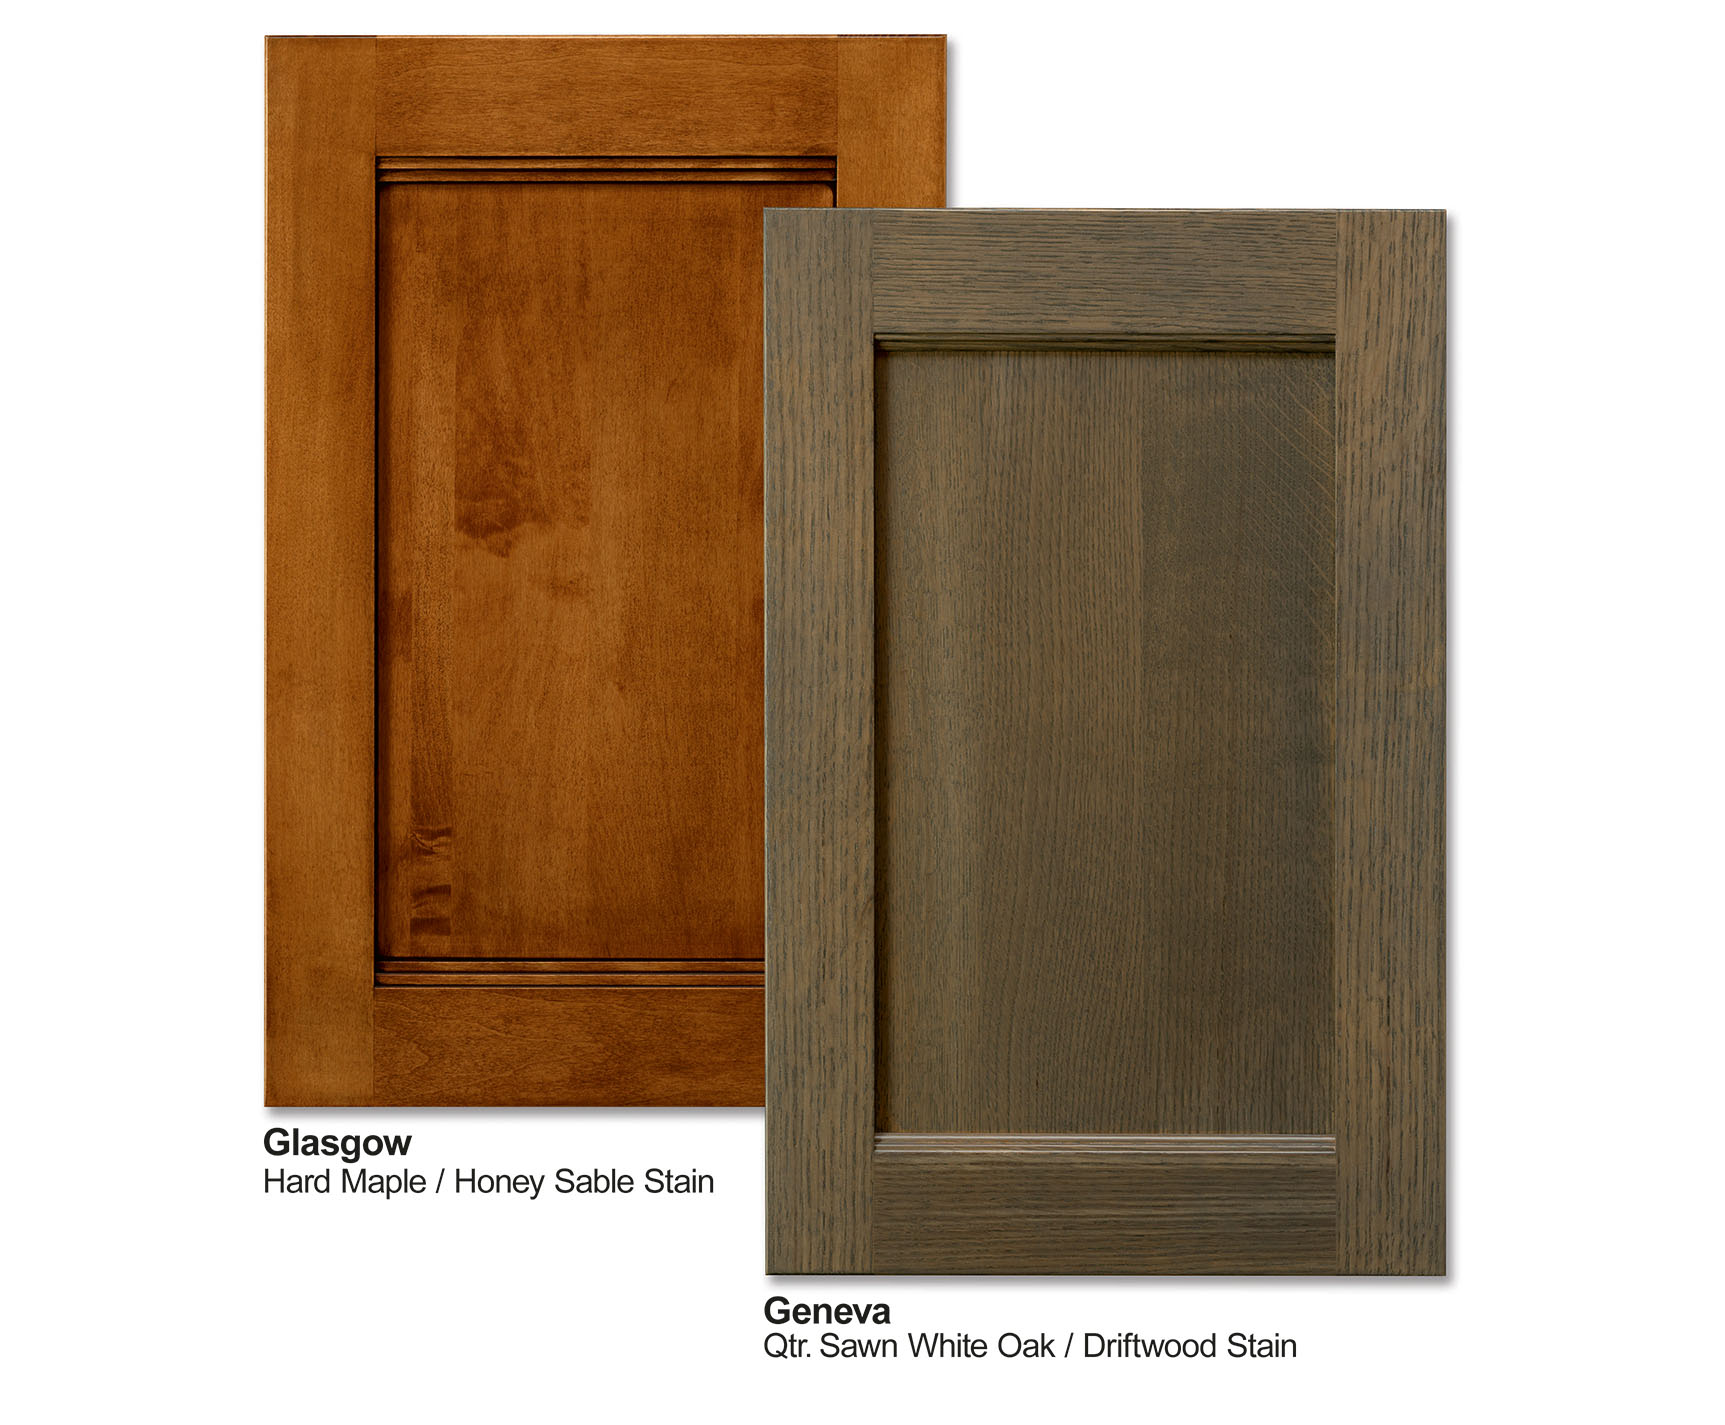 A DOUBLE PLAY INTRODUCTION OF INSPIRED DOOR DESIGNS